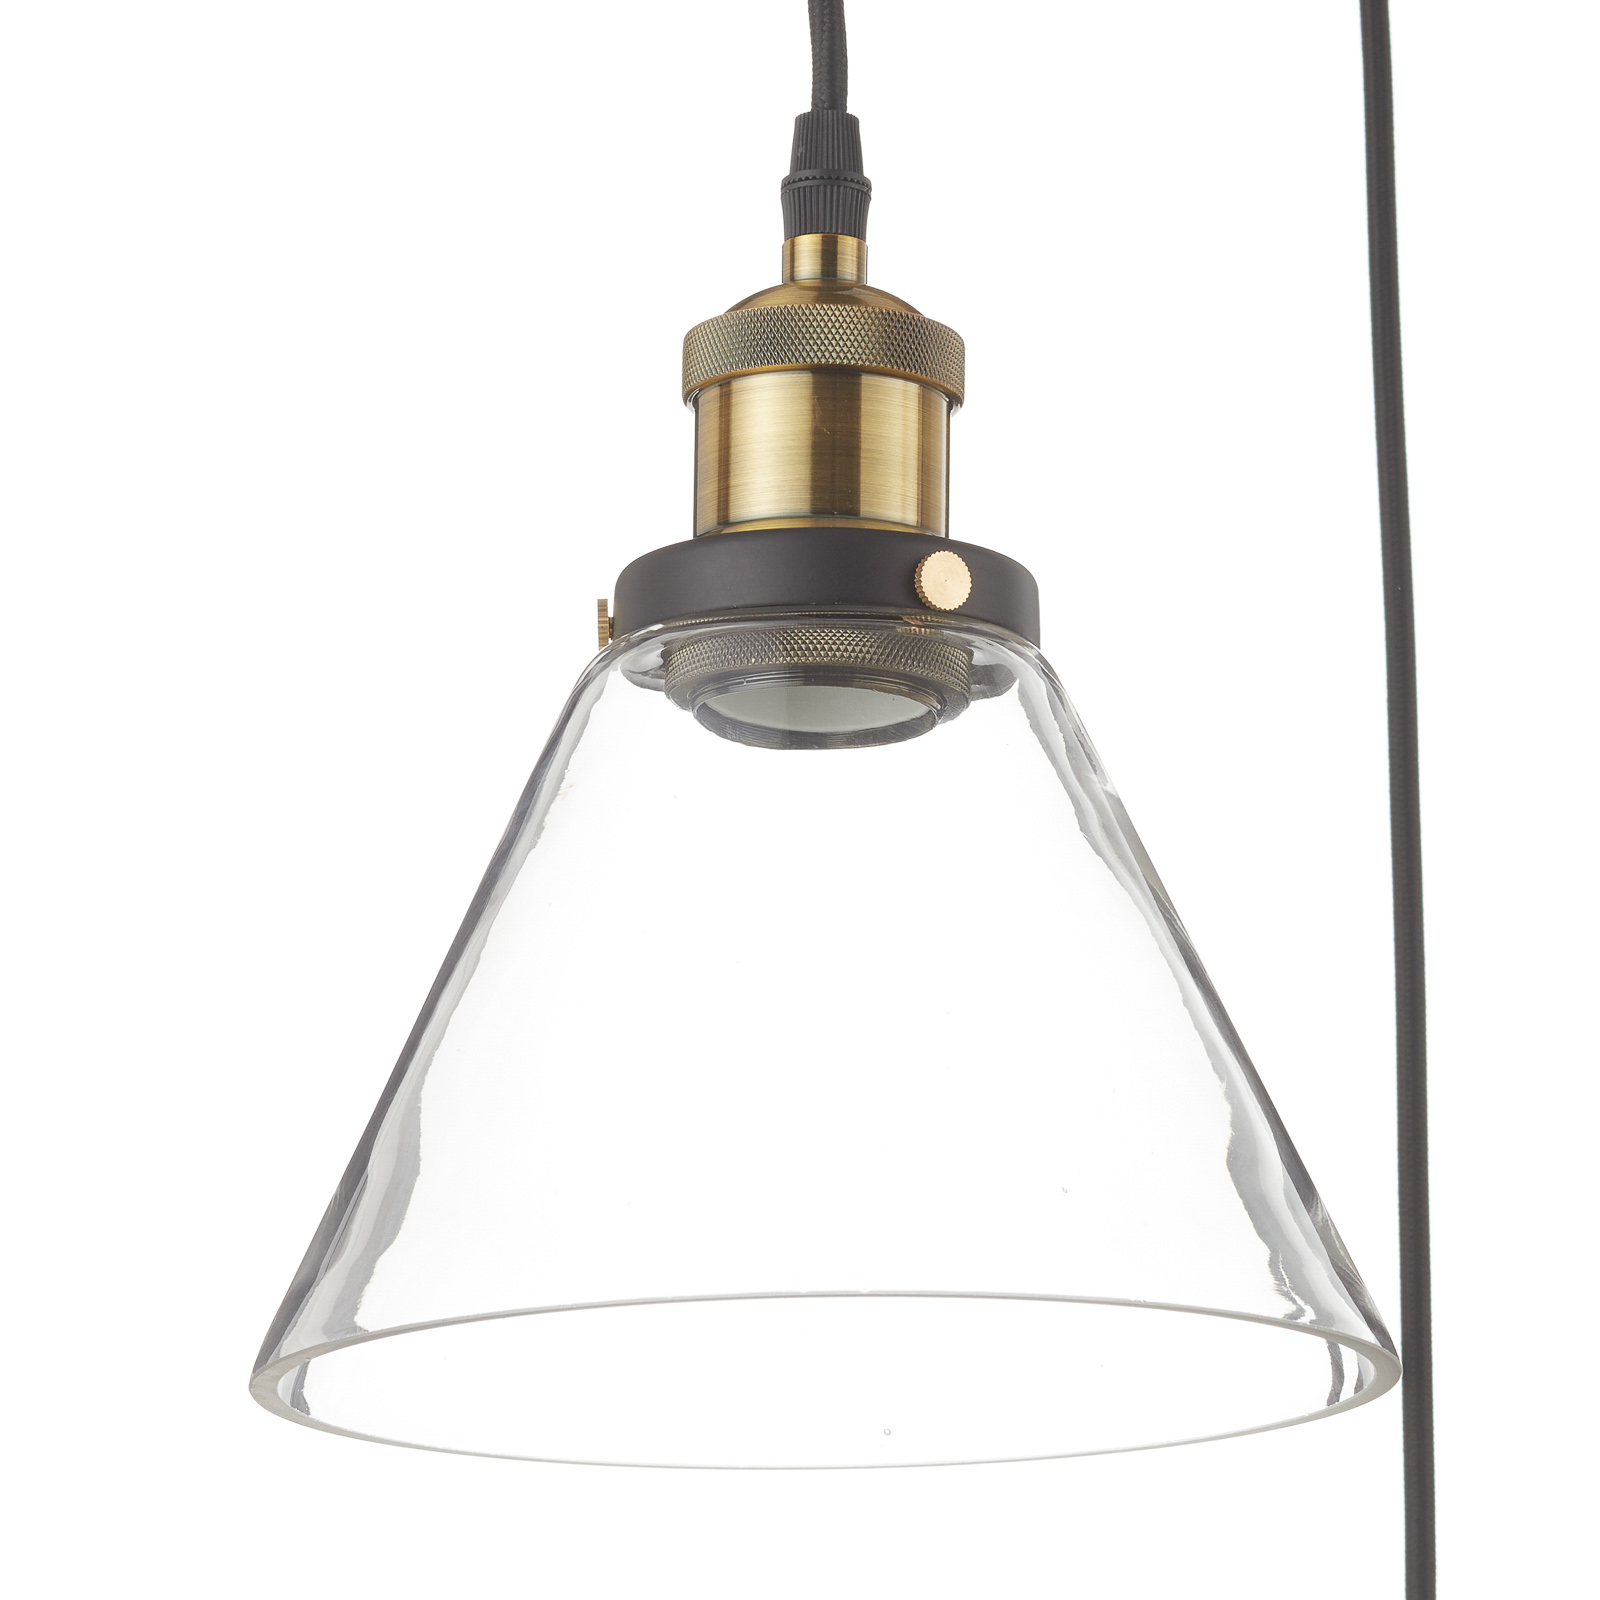 Suspension LA034 E27 3 lampes laiton/transparente